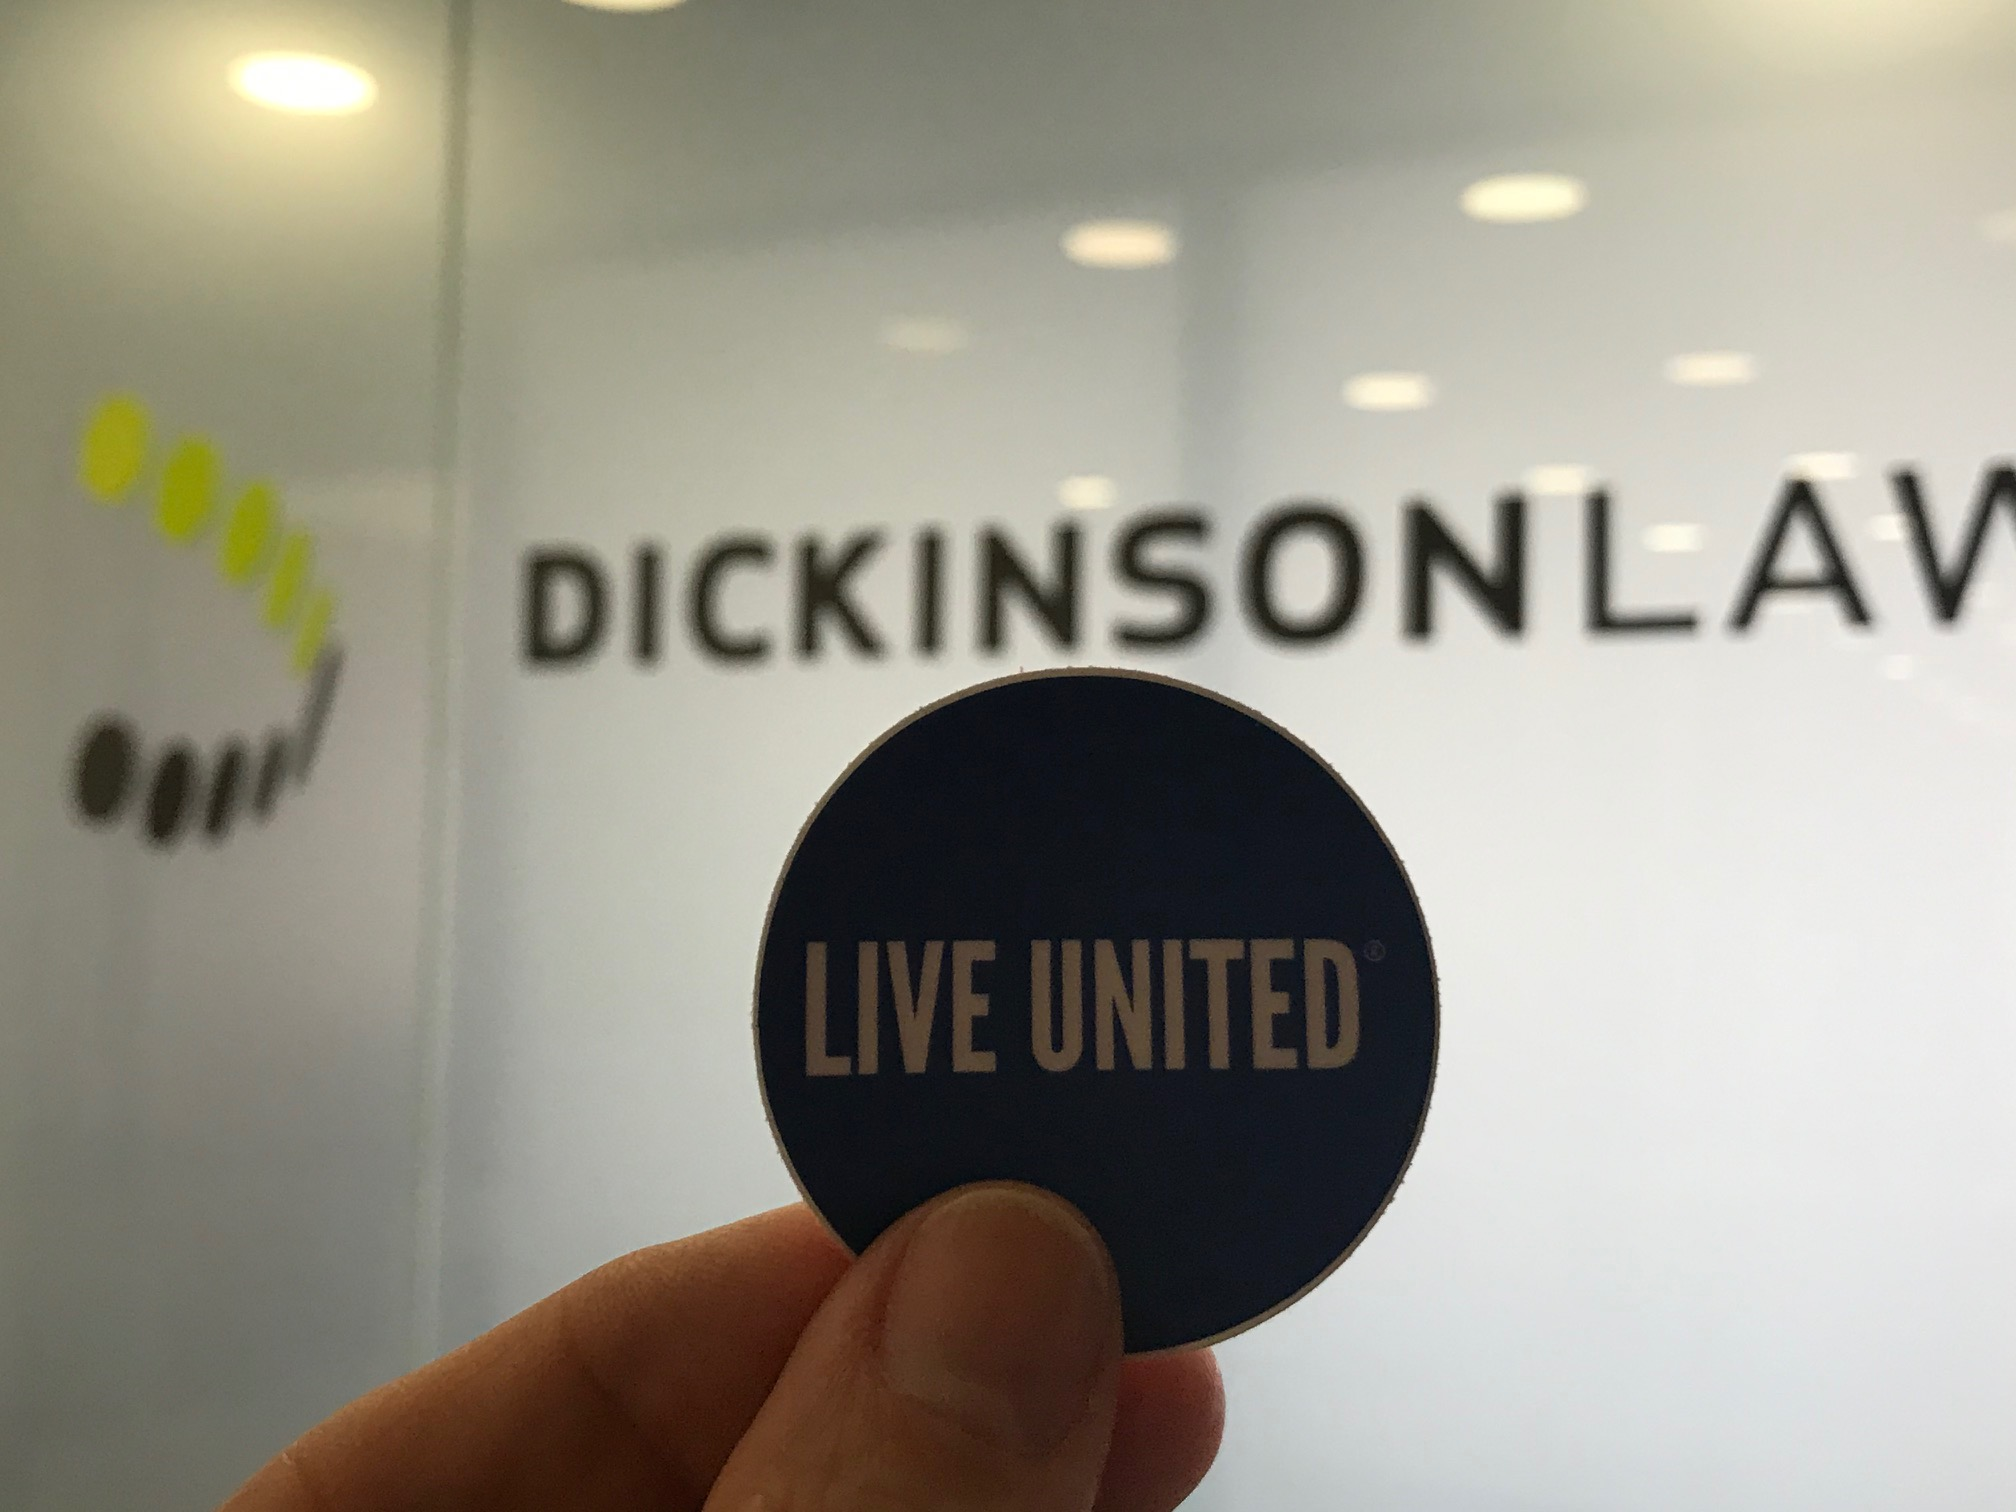 It's United Way Campaign Week at Dickinson Law